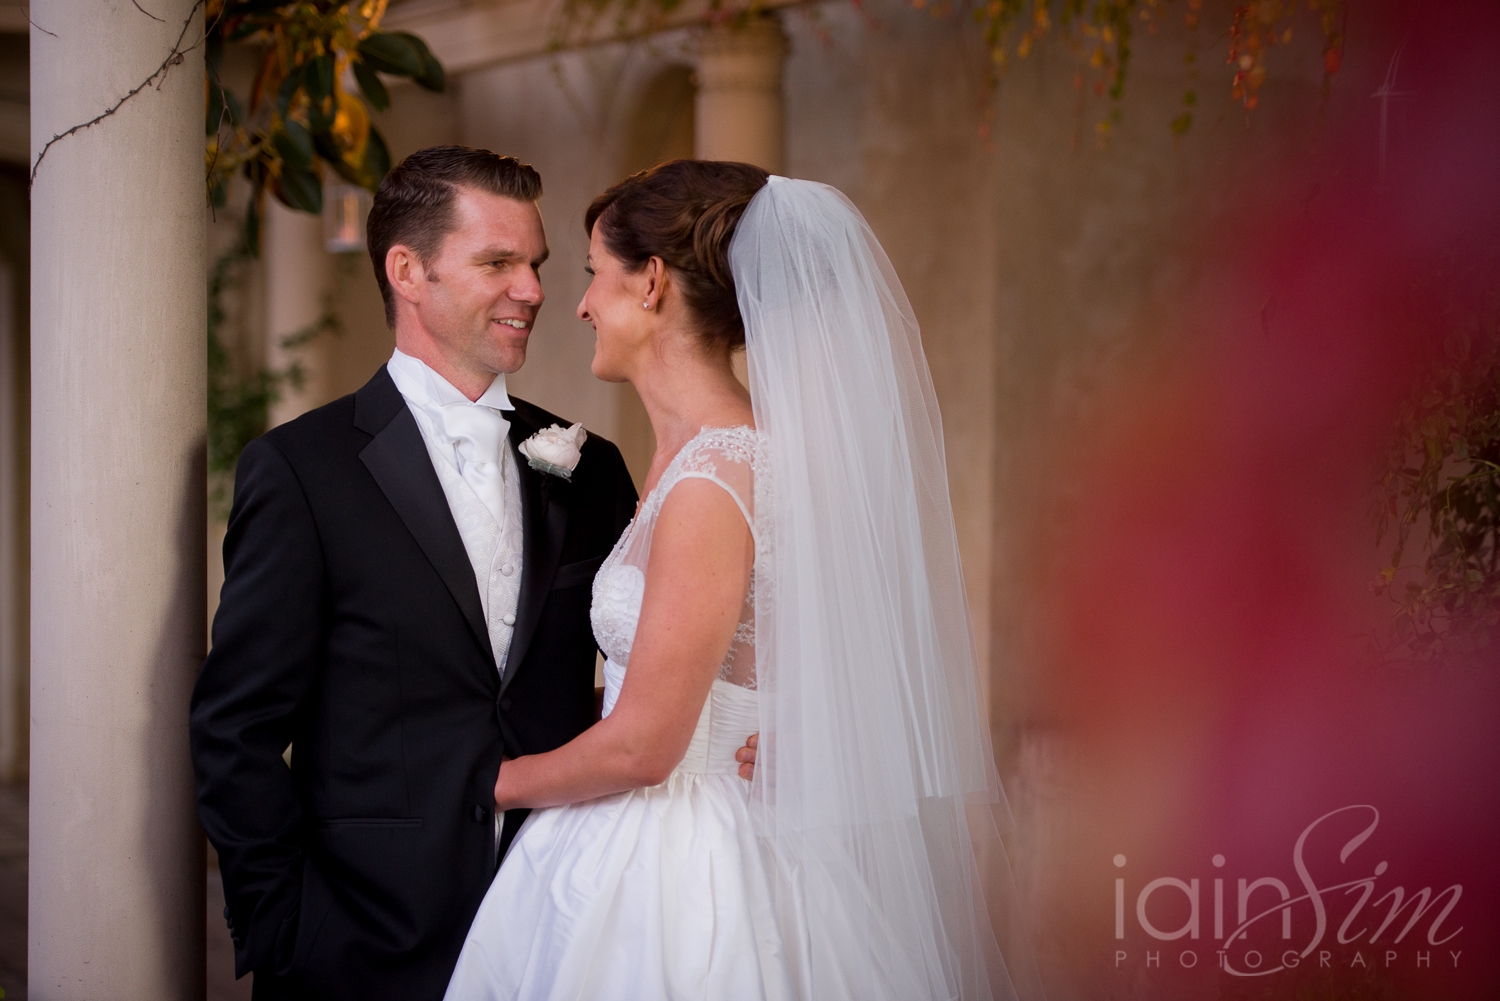 wpid-Katherine-and-Marks-RipponLea-Wedding-by-Iain-Sim-Photography_032.jpg